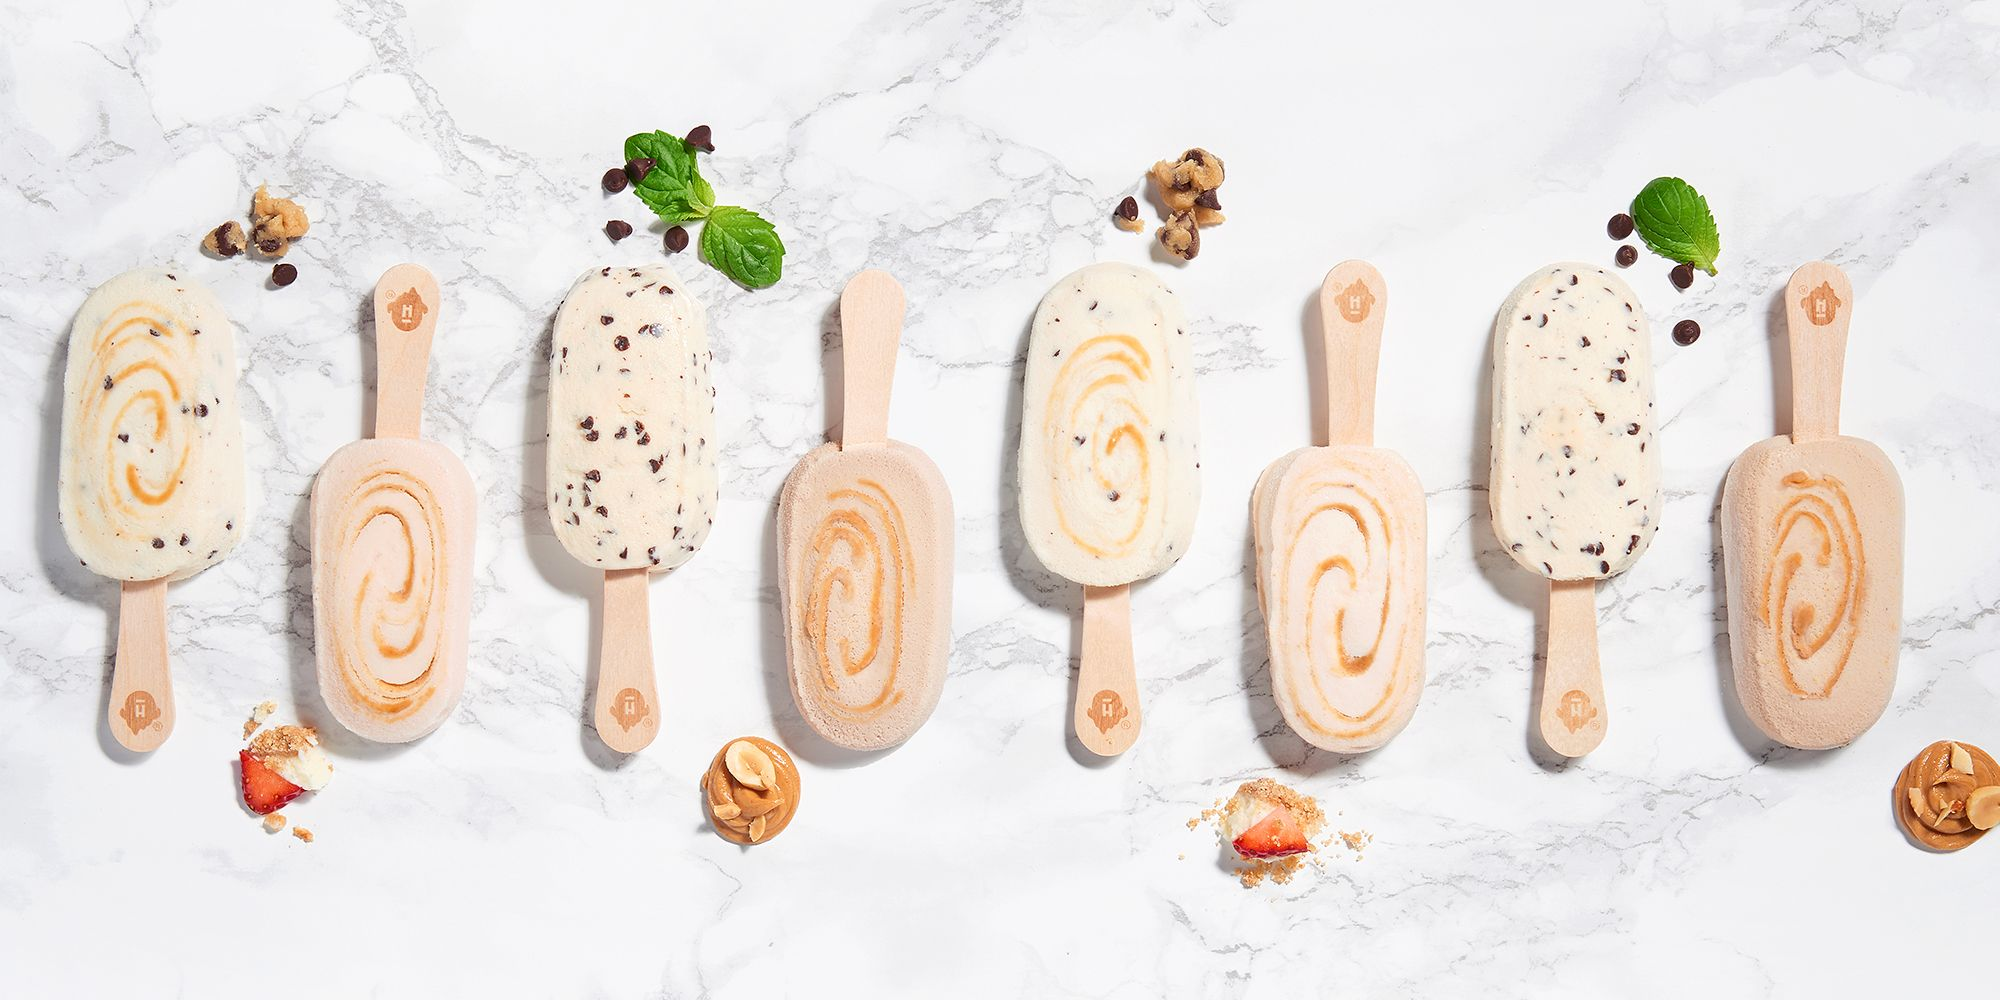 Halo Top Is Giving Away Free Ice Cream Bars For National Ice Cream Day On Bumble